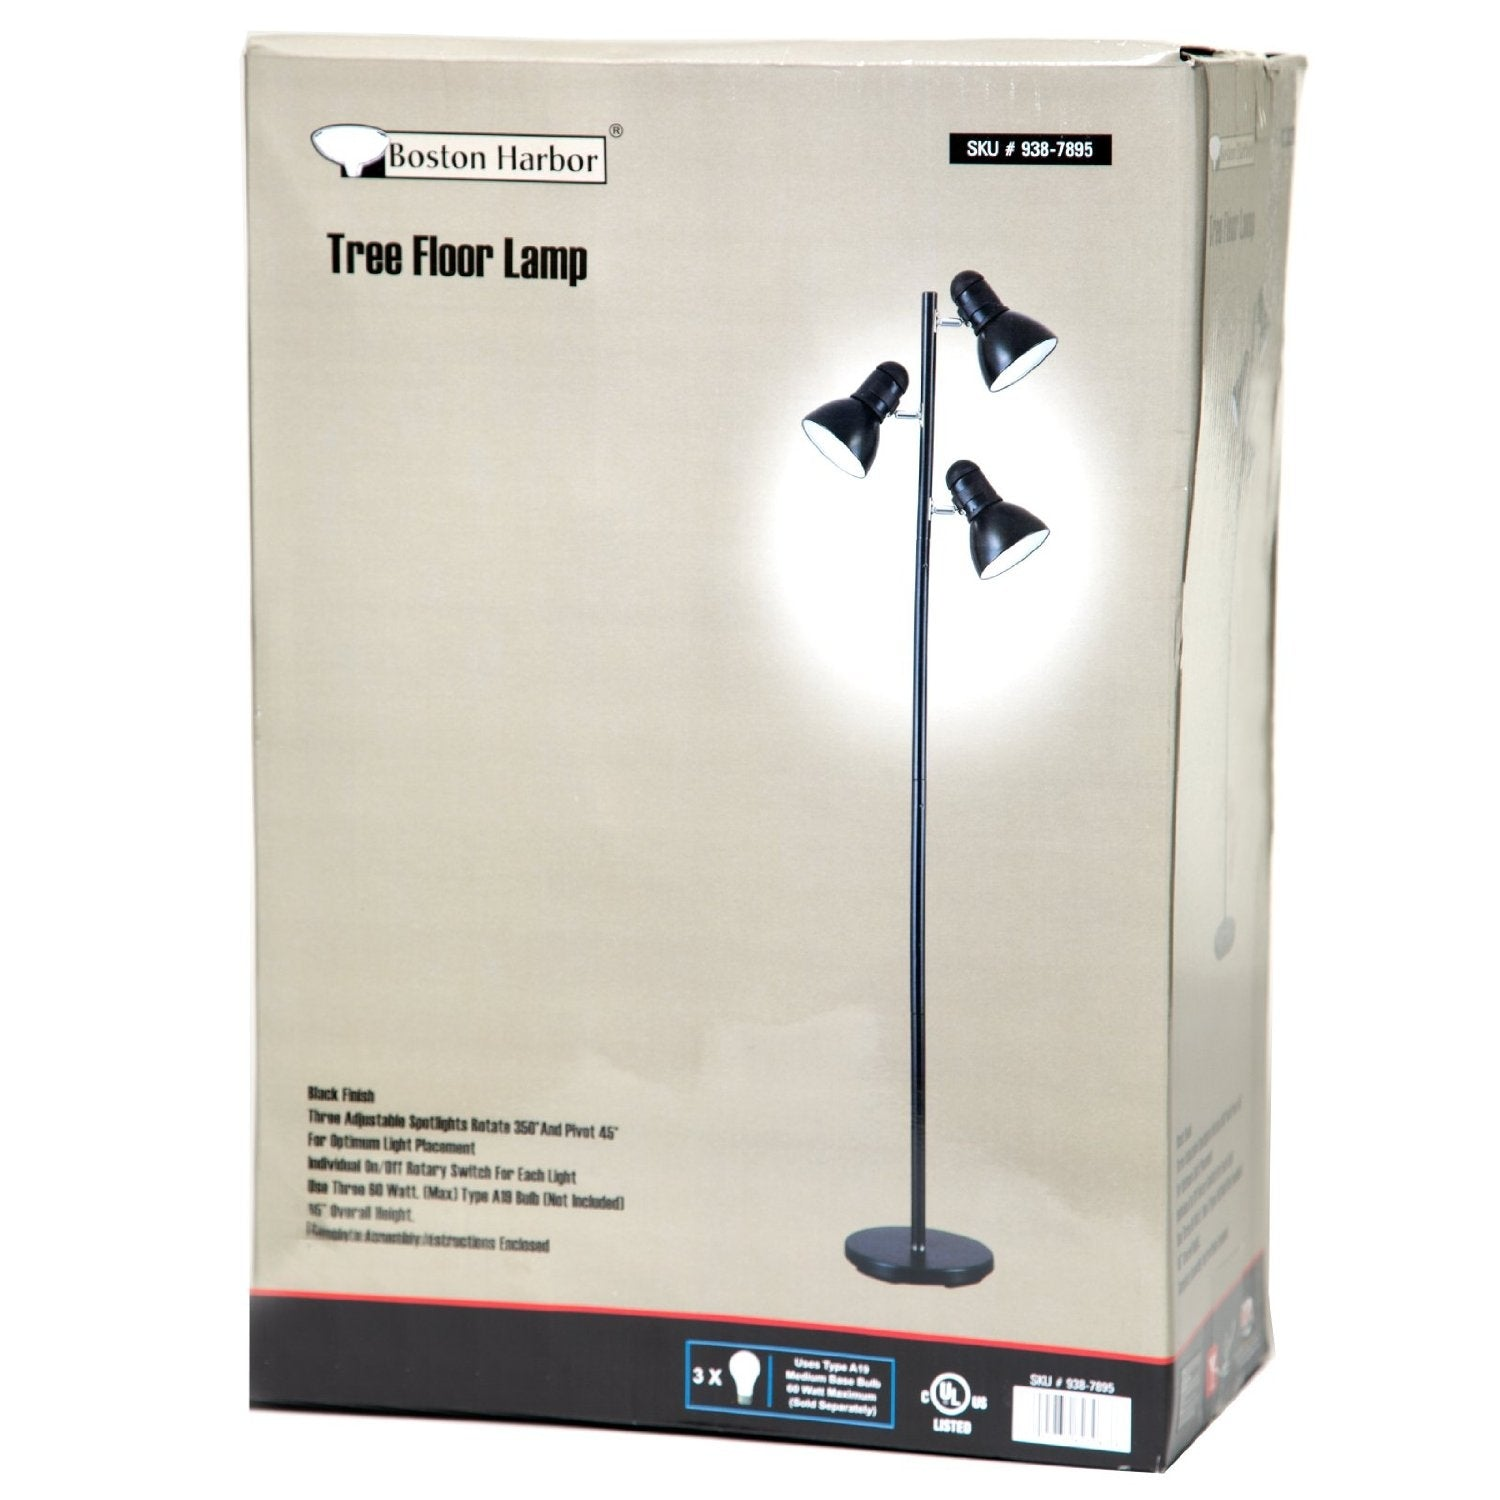 65-inch Black 3-Light Tree Lamp Spotlight Floor Lamp